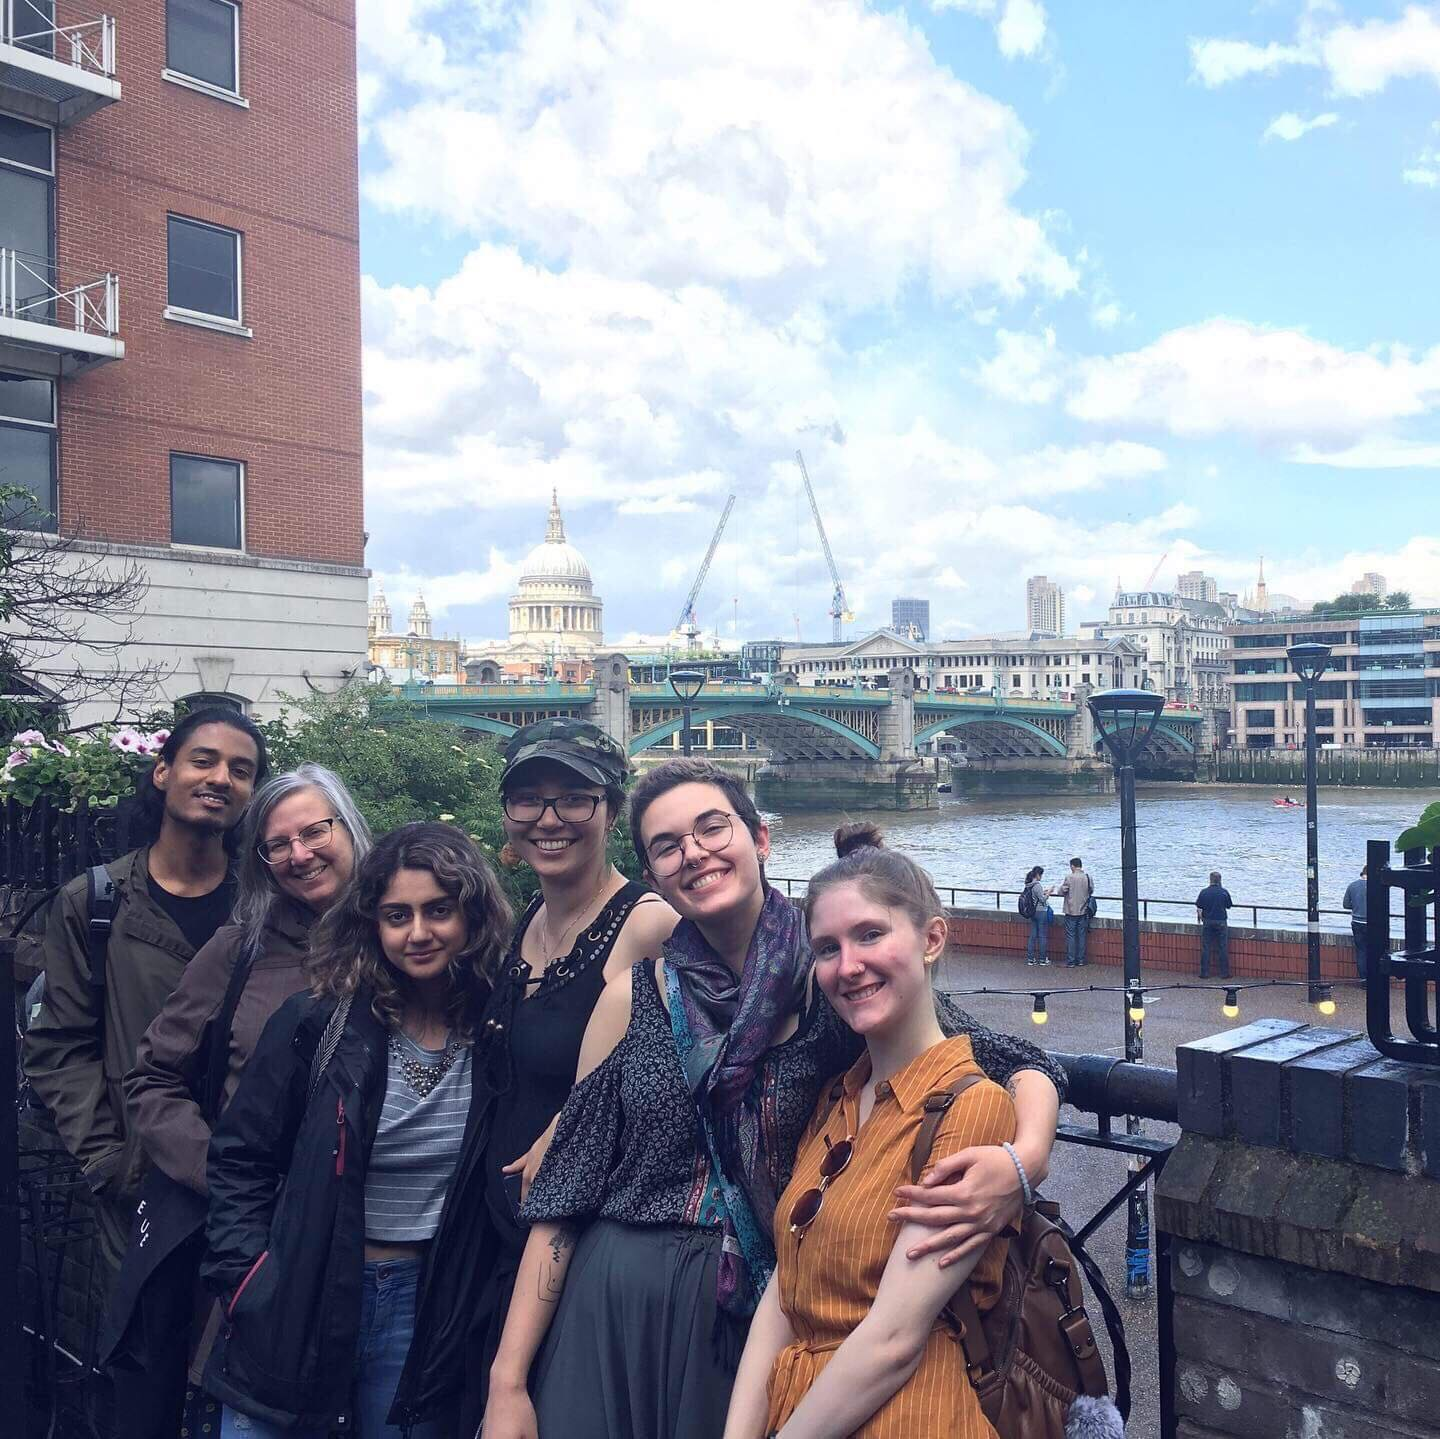 Lily, an international student from Iran, is seen here third from the left along with Shonel, Angela, Celesta, Leah, and Allison, down along the Thames River.